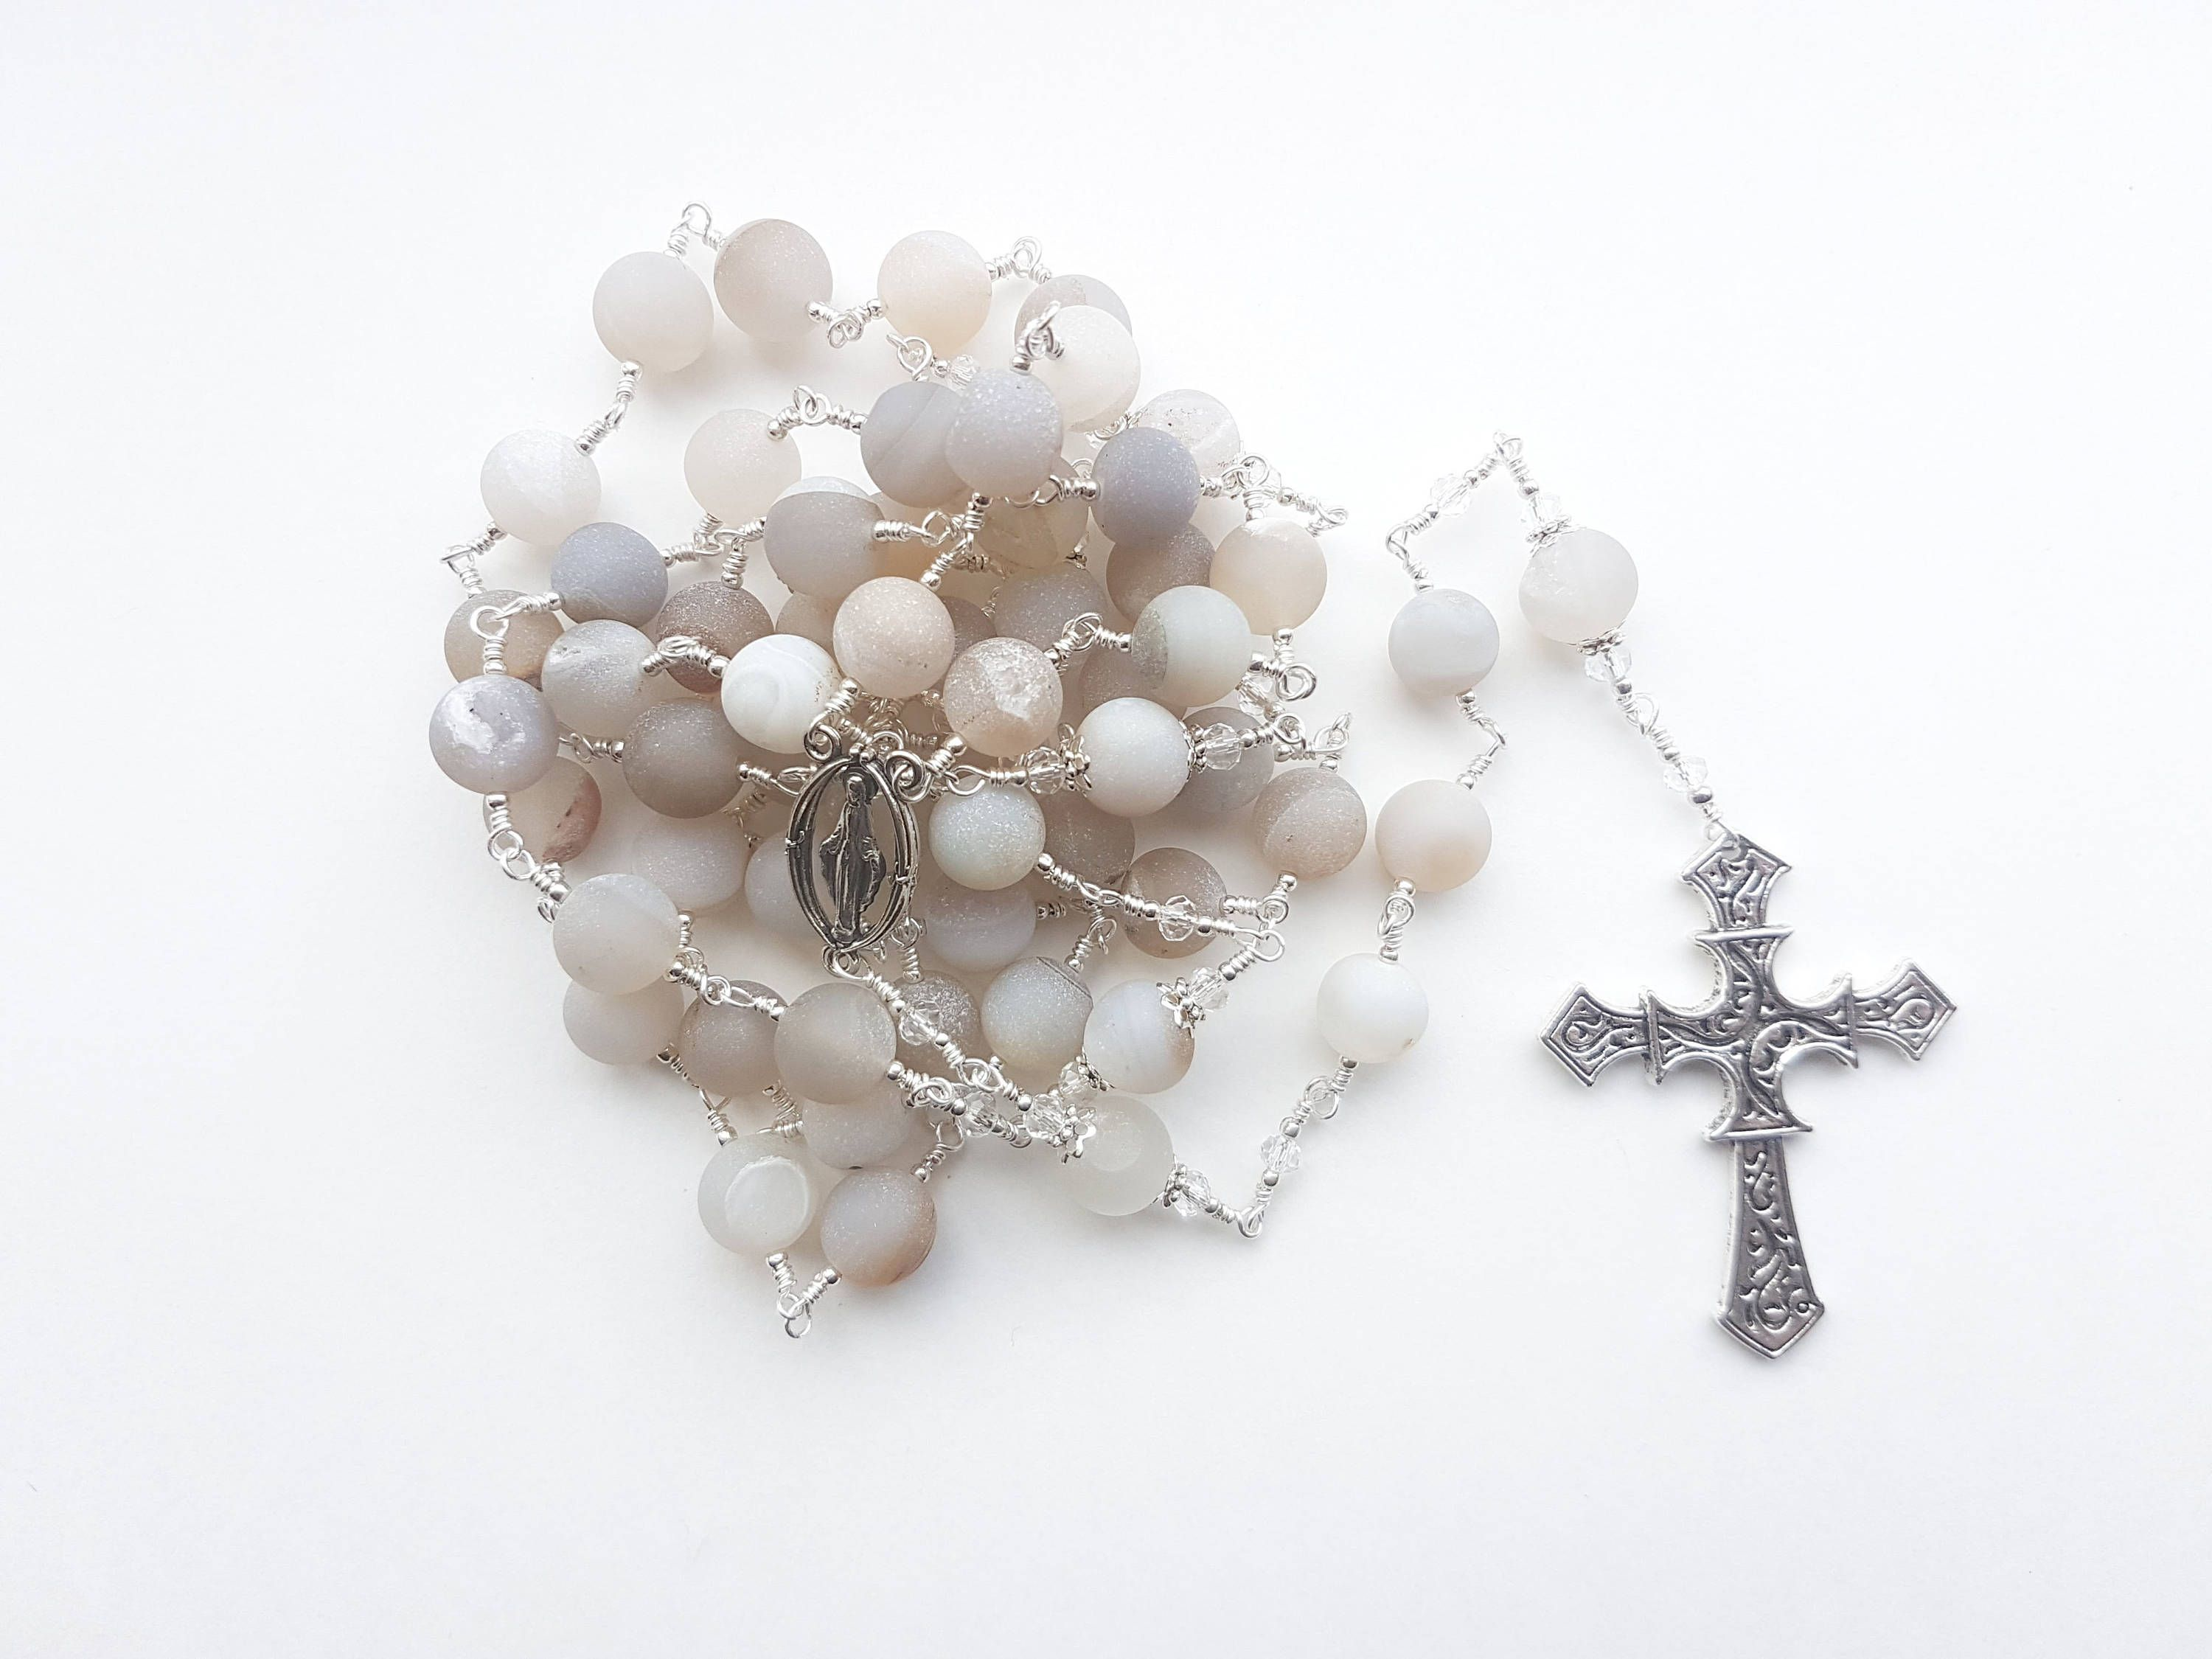 Frosted Catholic Rosary Beads. Gemstone Rosaries, Wire Wrapped with ...